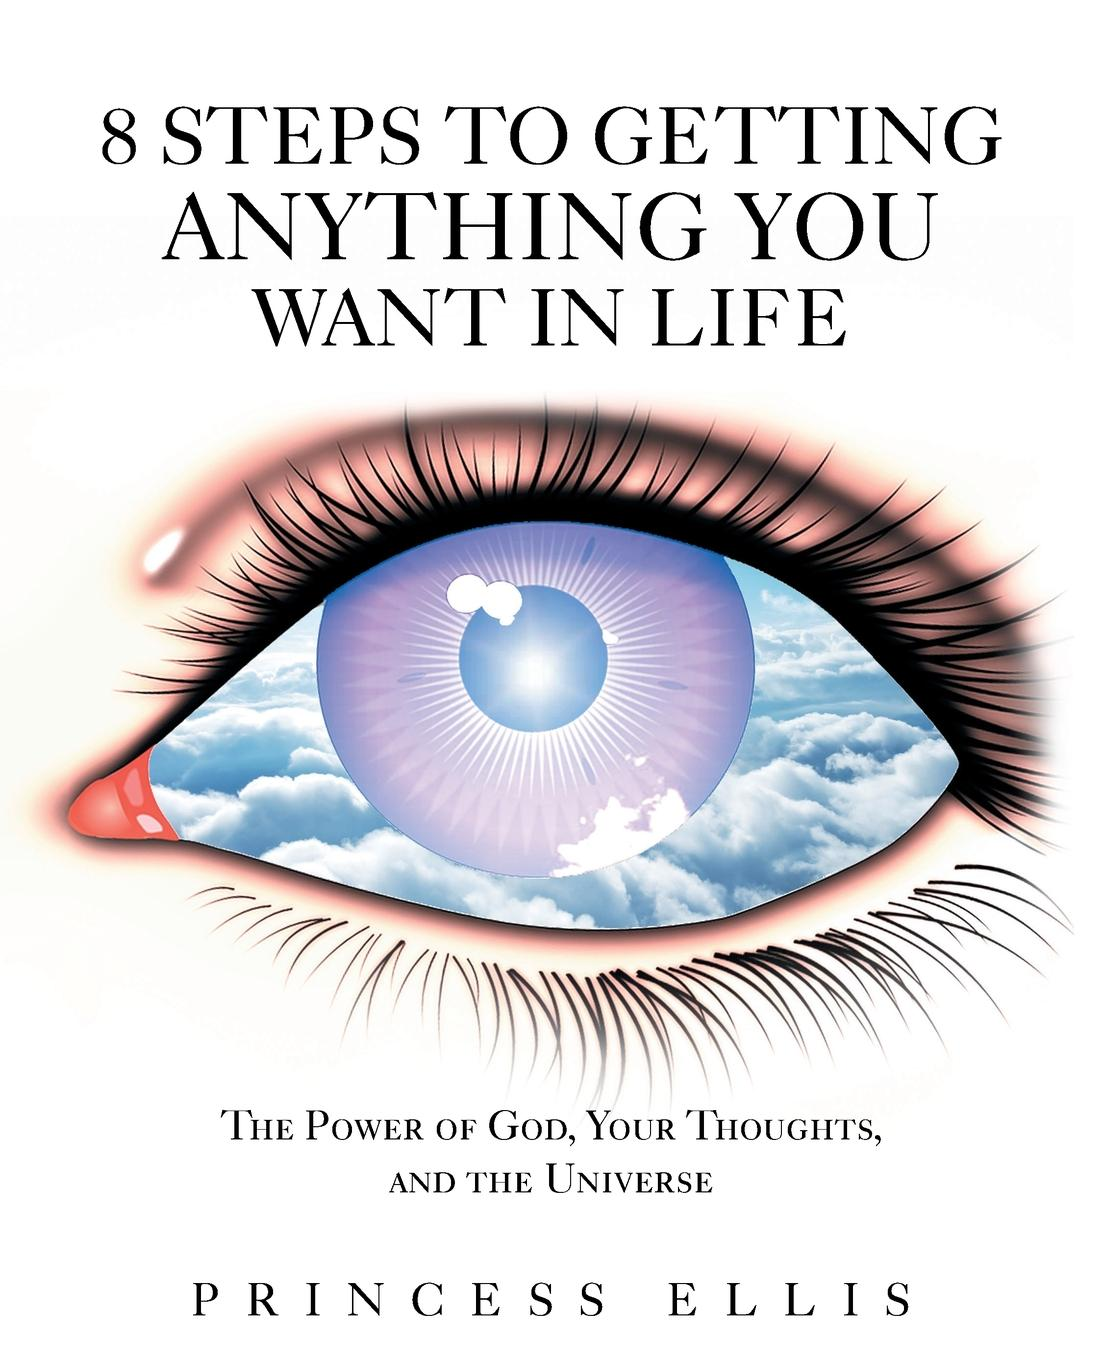 Princess Ellis 8 Steps to Getting Anything You Want in Life. The Power of God, Your Thoughts, and the Universe